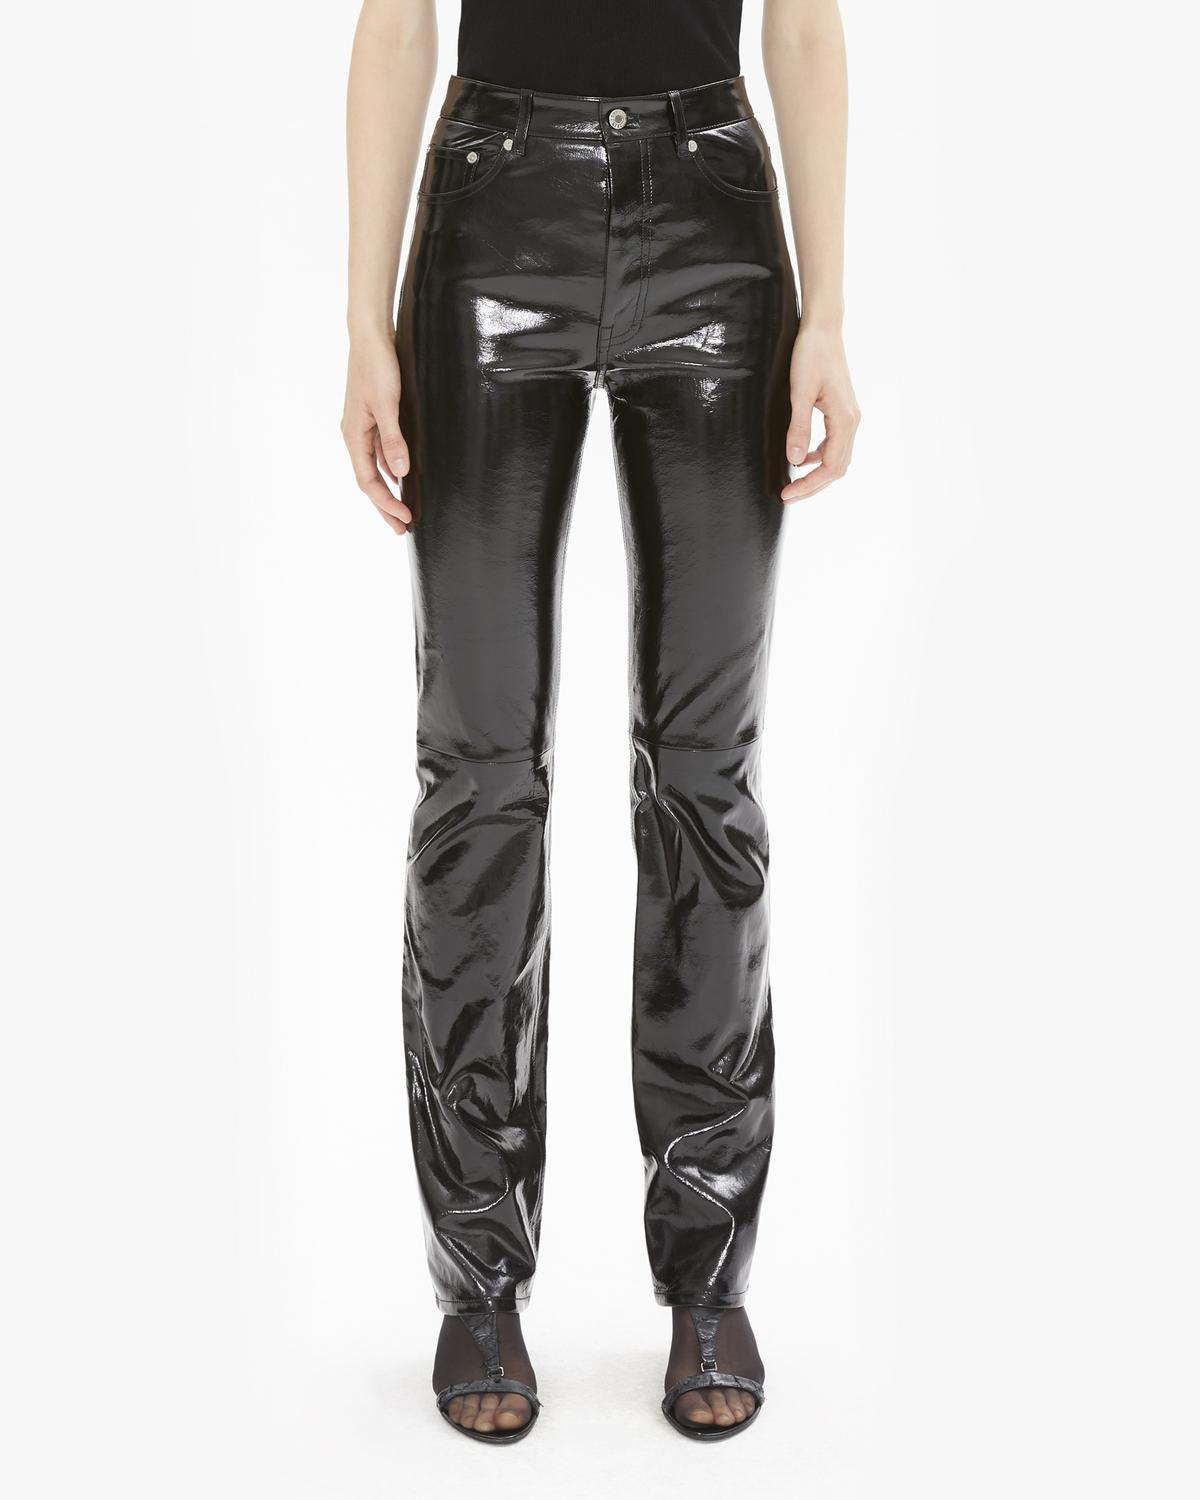 PATENT LEATHER FIVE POCKET PANT